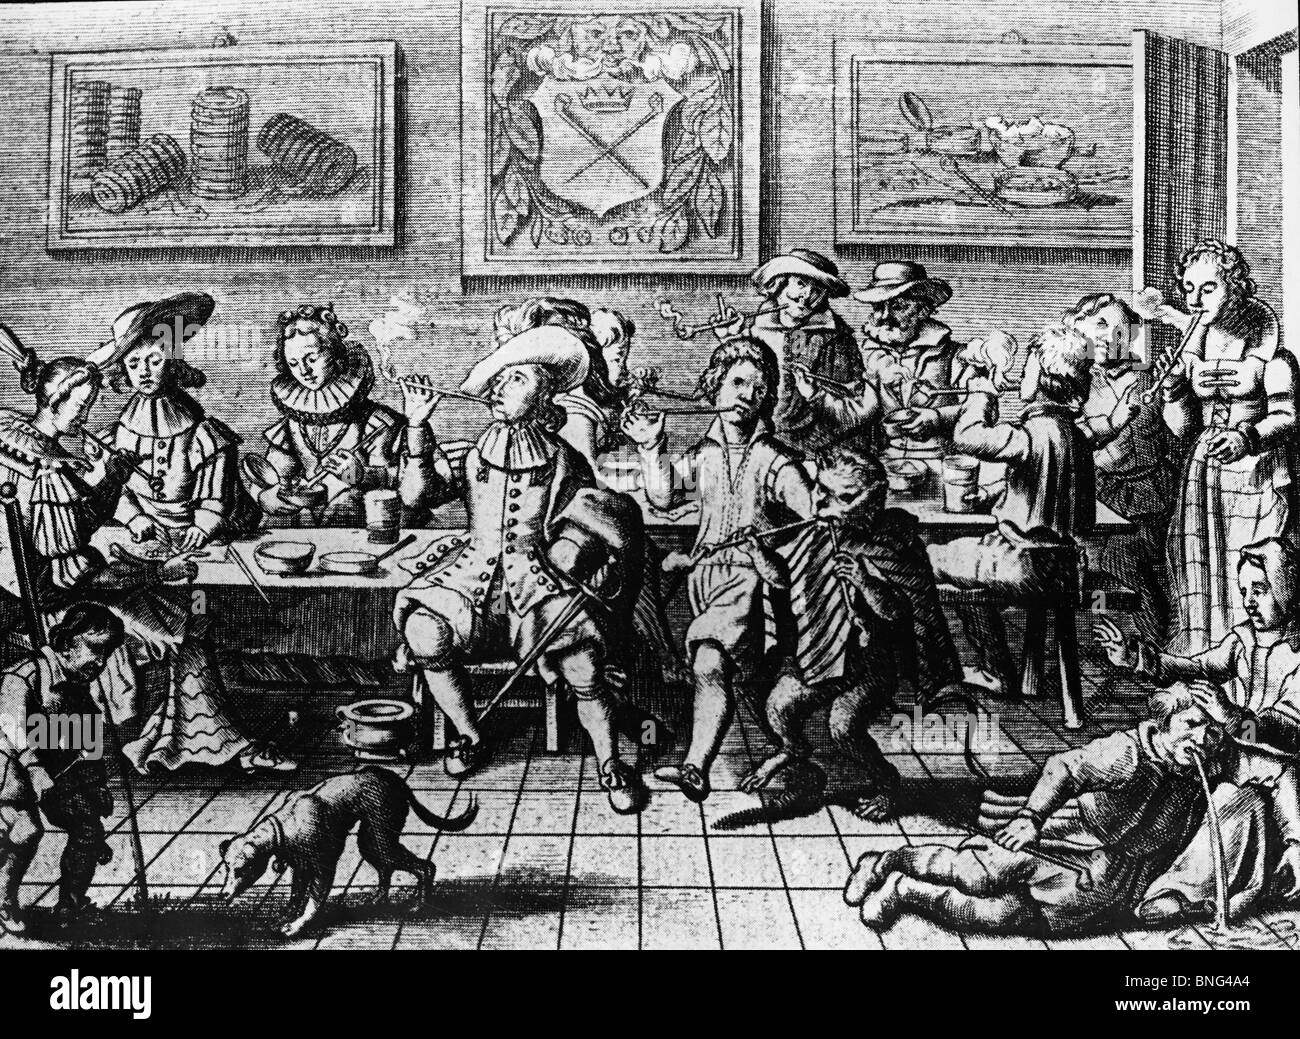 Drinking and Smoking Bout in Holland by unknown artist, 17th Century - Stock Image